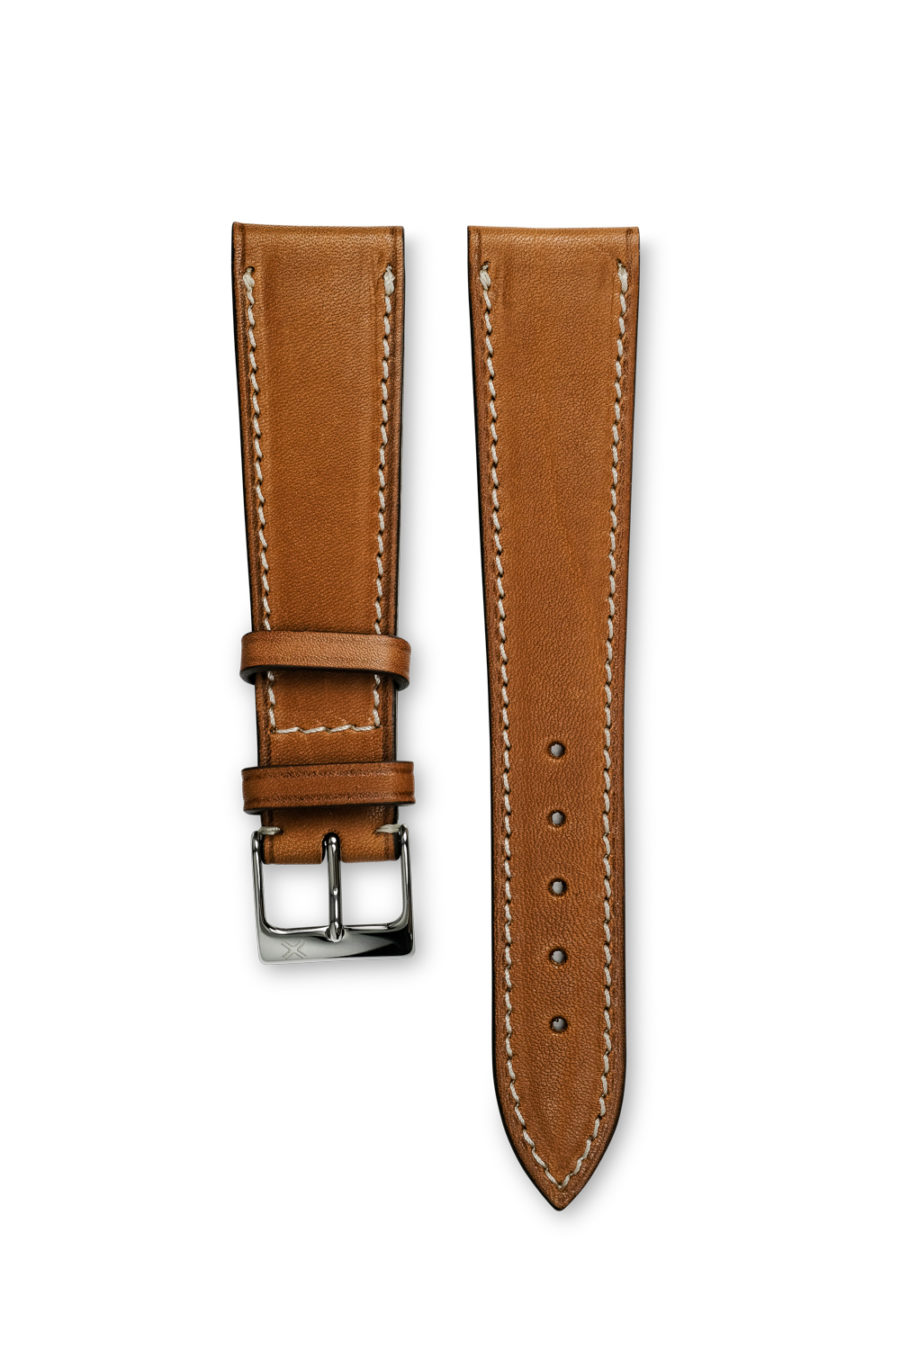 Smooth Classic Barenia light brown tan leather watch strap - cream stitching - LUGS brand